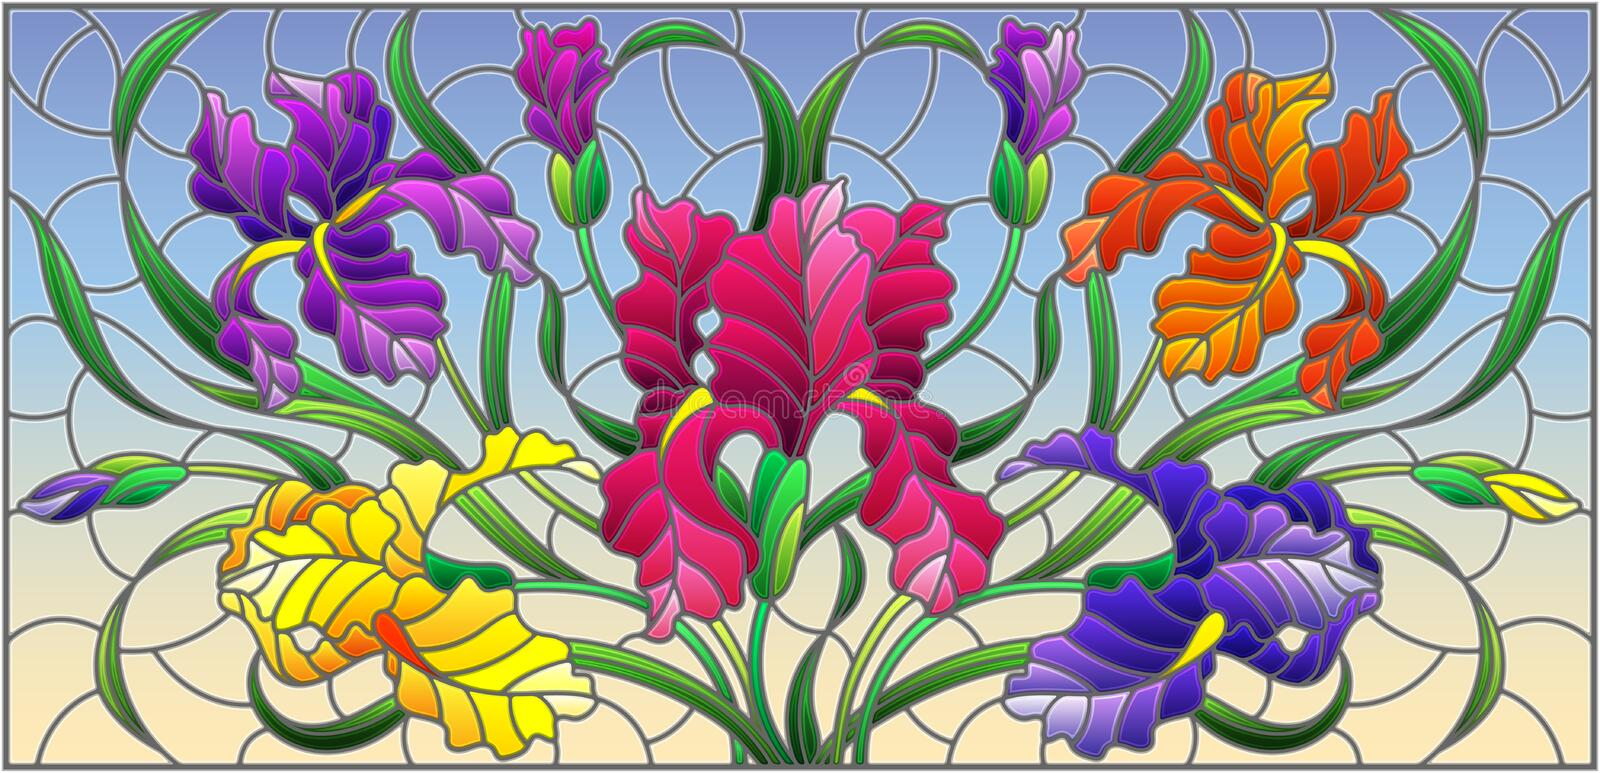 Stained glass illustration with purple bouquet of irises, flowers, buds and leaves on blue background. Illustration in stained glass style with purple bouquet of vector illustration